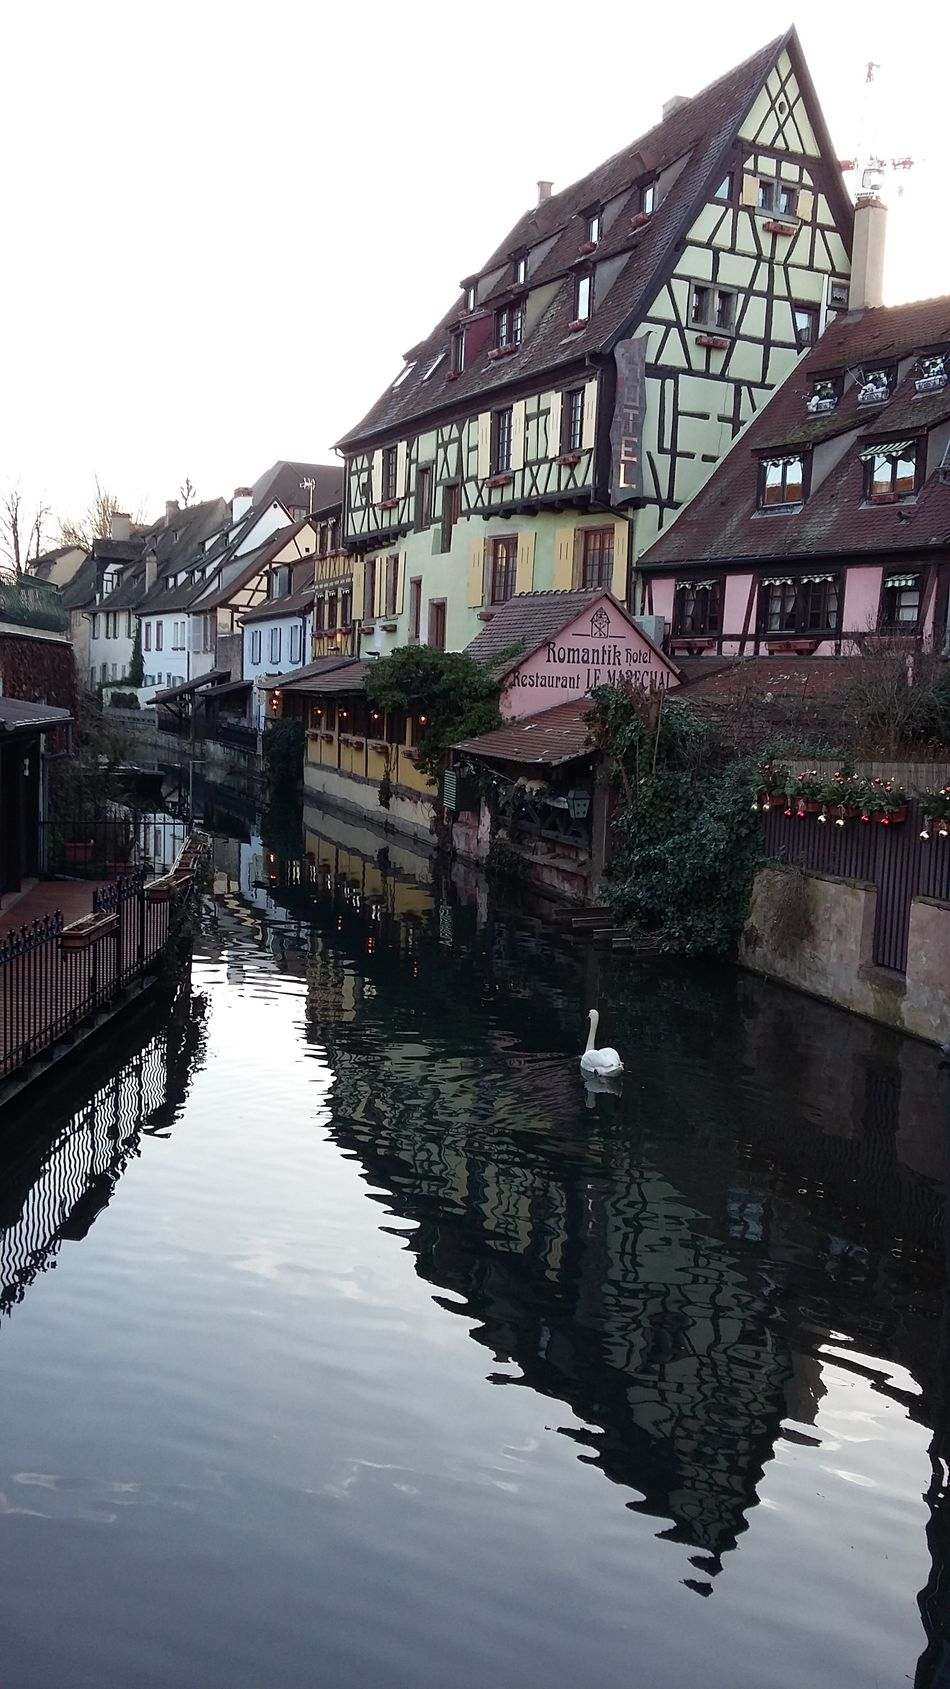 Water Reflection Outdoors Swans Colmar, Alsace, France Winter Sunny Day River Bridge Waterfront Lake No People City Building Exterior Sky Architecture Bridge - Man Made Structure Day